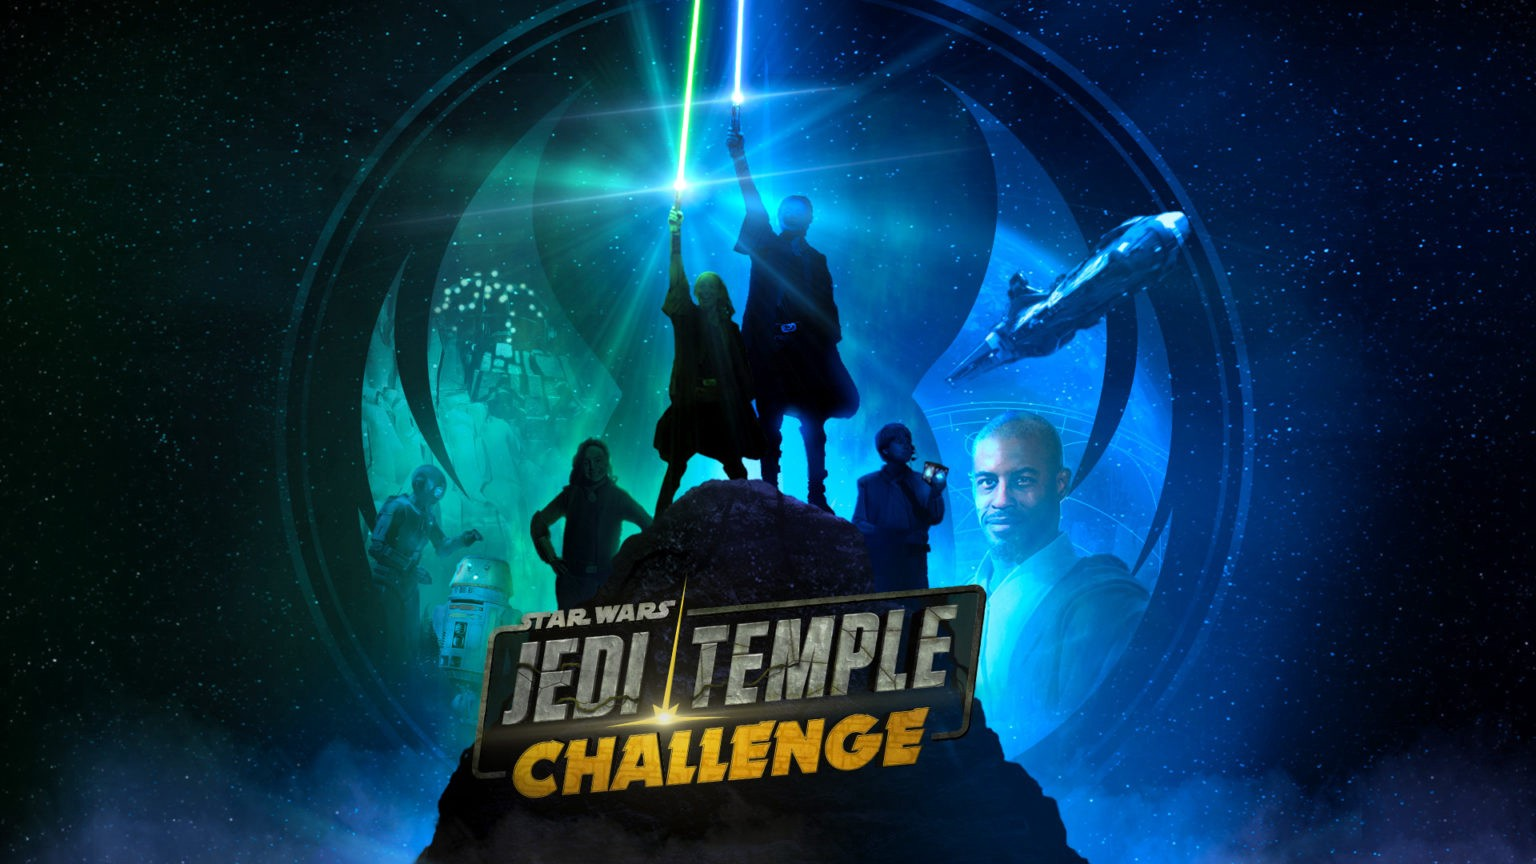 Star Wars Jedi Temple Challenge Episode 4